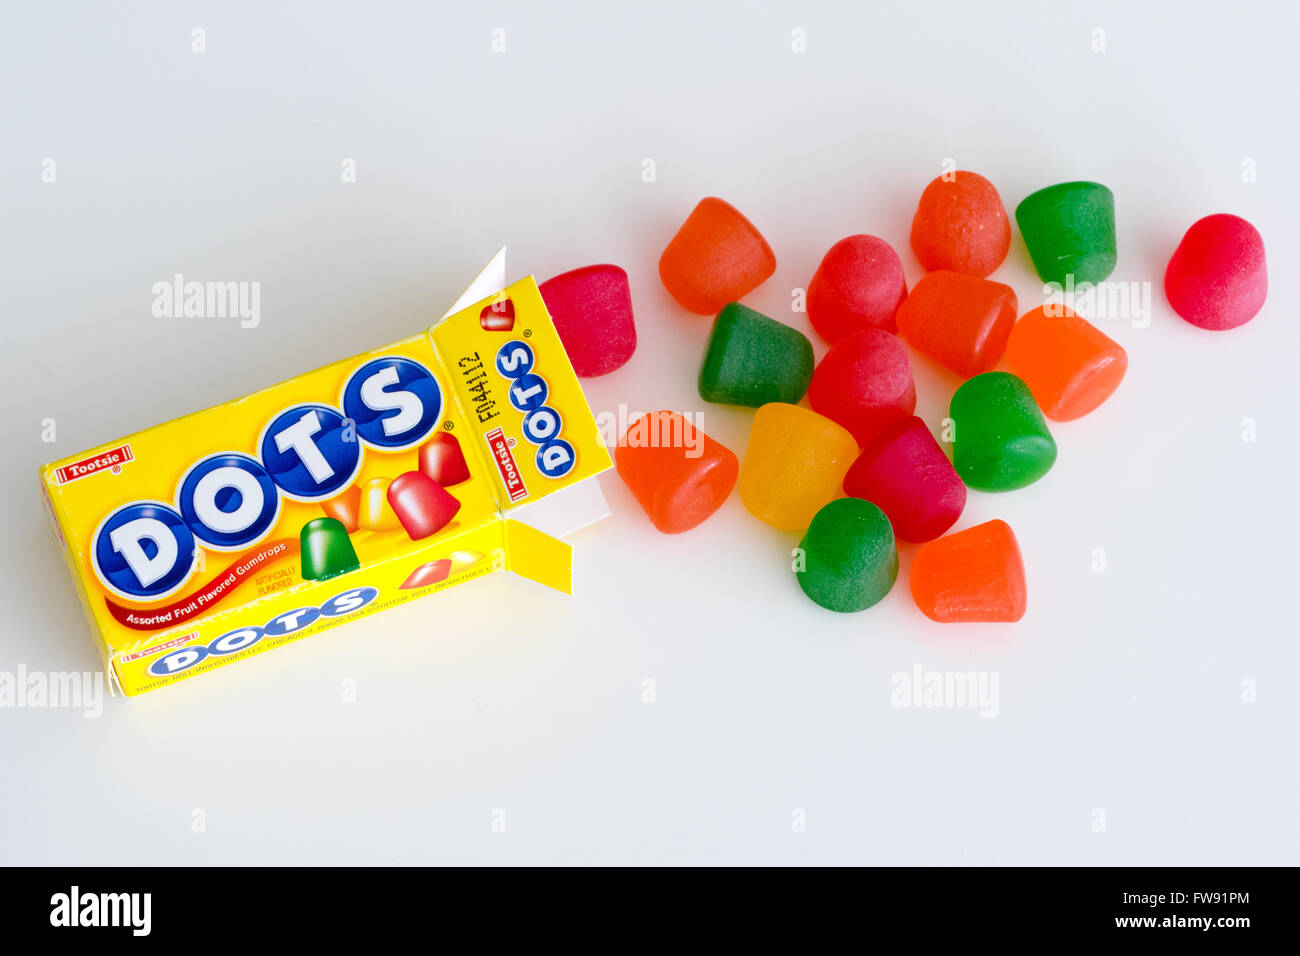 DOTS (also known as Mason Dots) gumdrops, which are marketed by Tootsie Roll Industries. - Stock Image